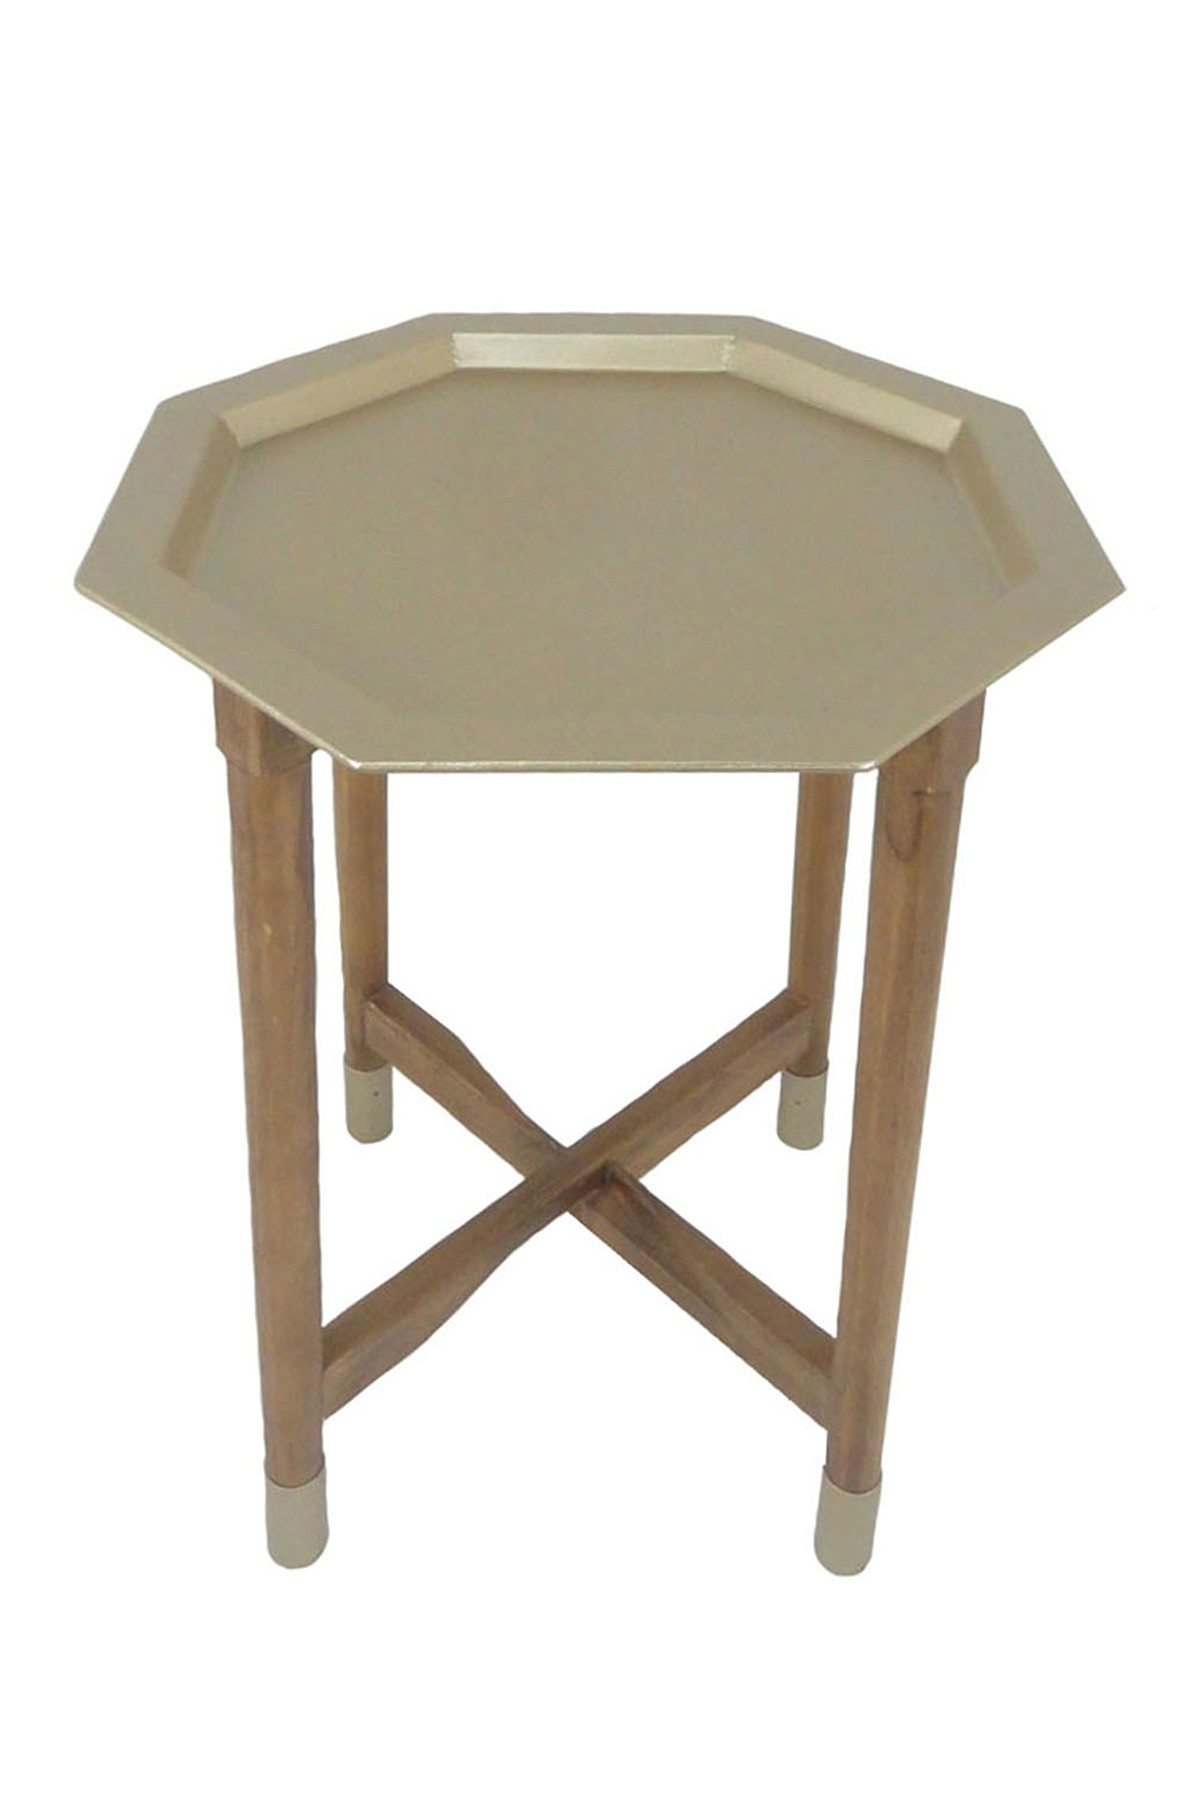 sagebrook home gold metal tray top accent table nordstrom rack bistro tablecloths round trend furniture foyer pedestal console inch sofa nate berkus glass agate pier coupon code